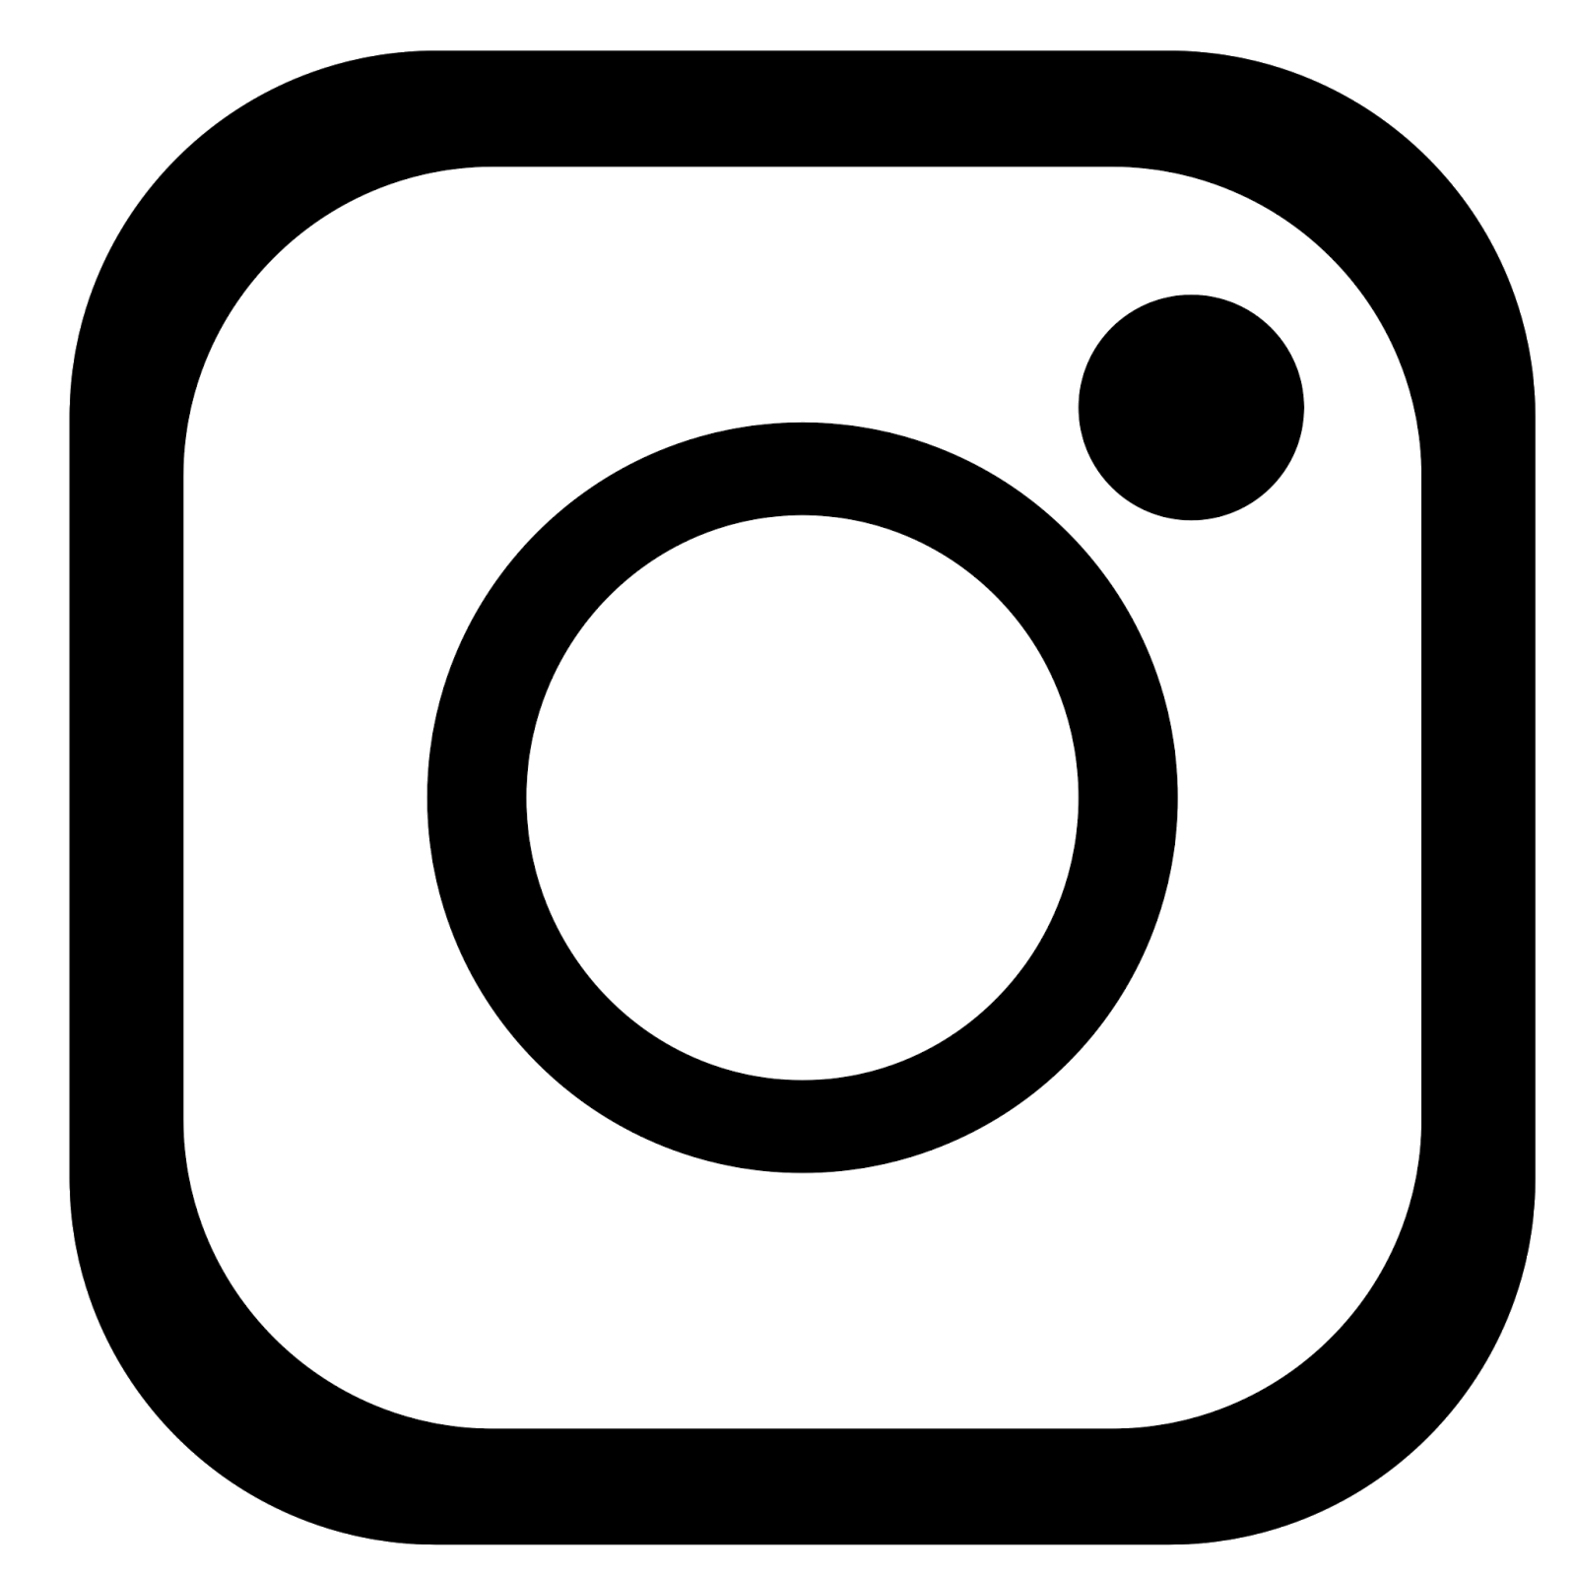 New instagram logo edigital. Icono twitter png